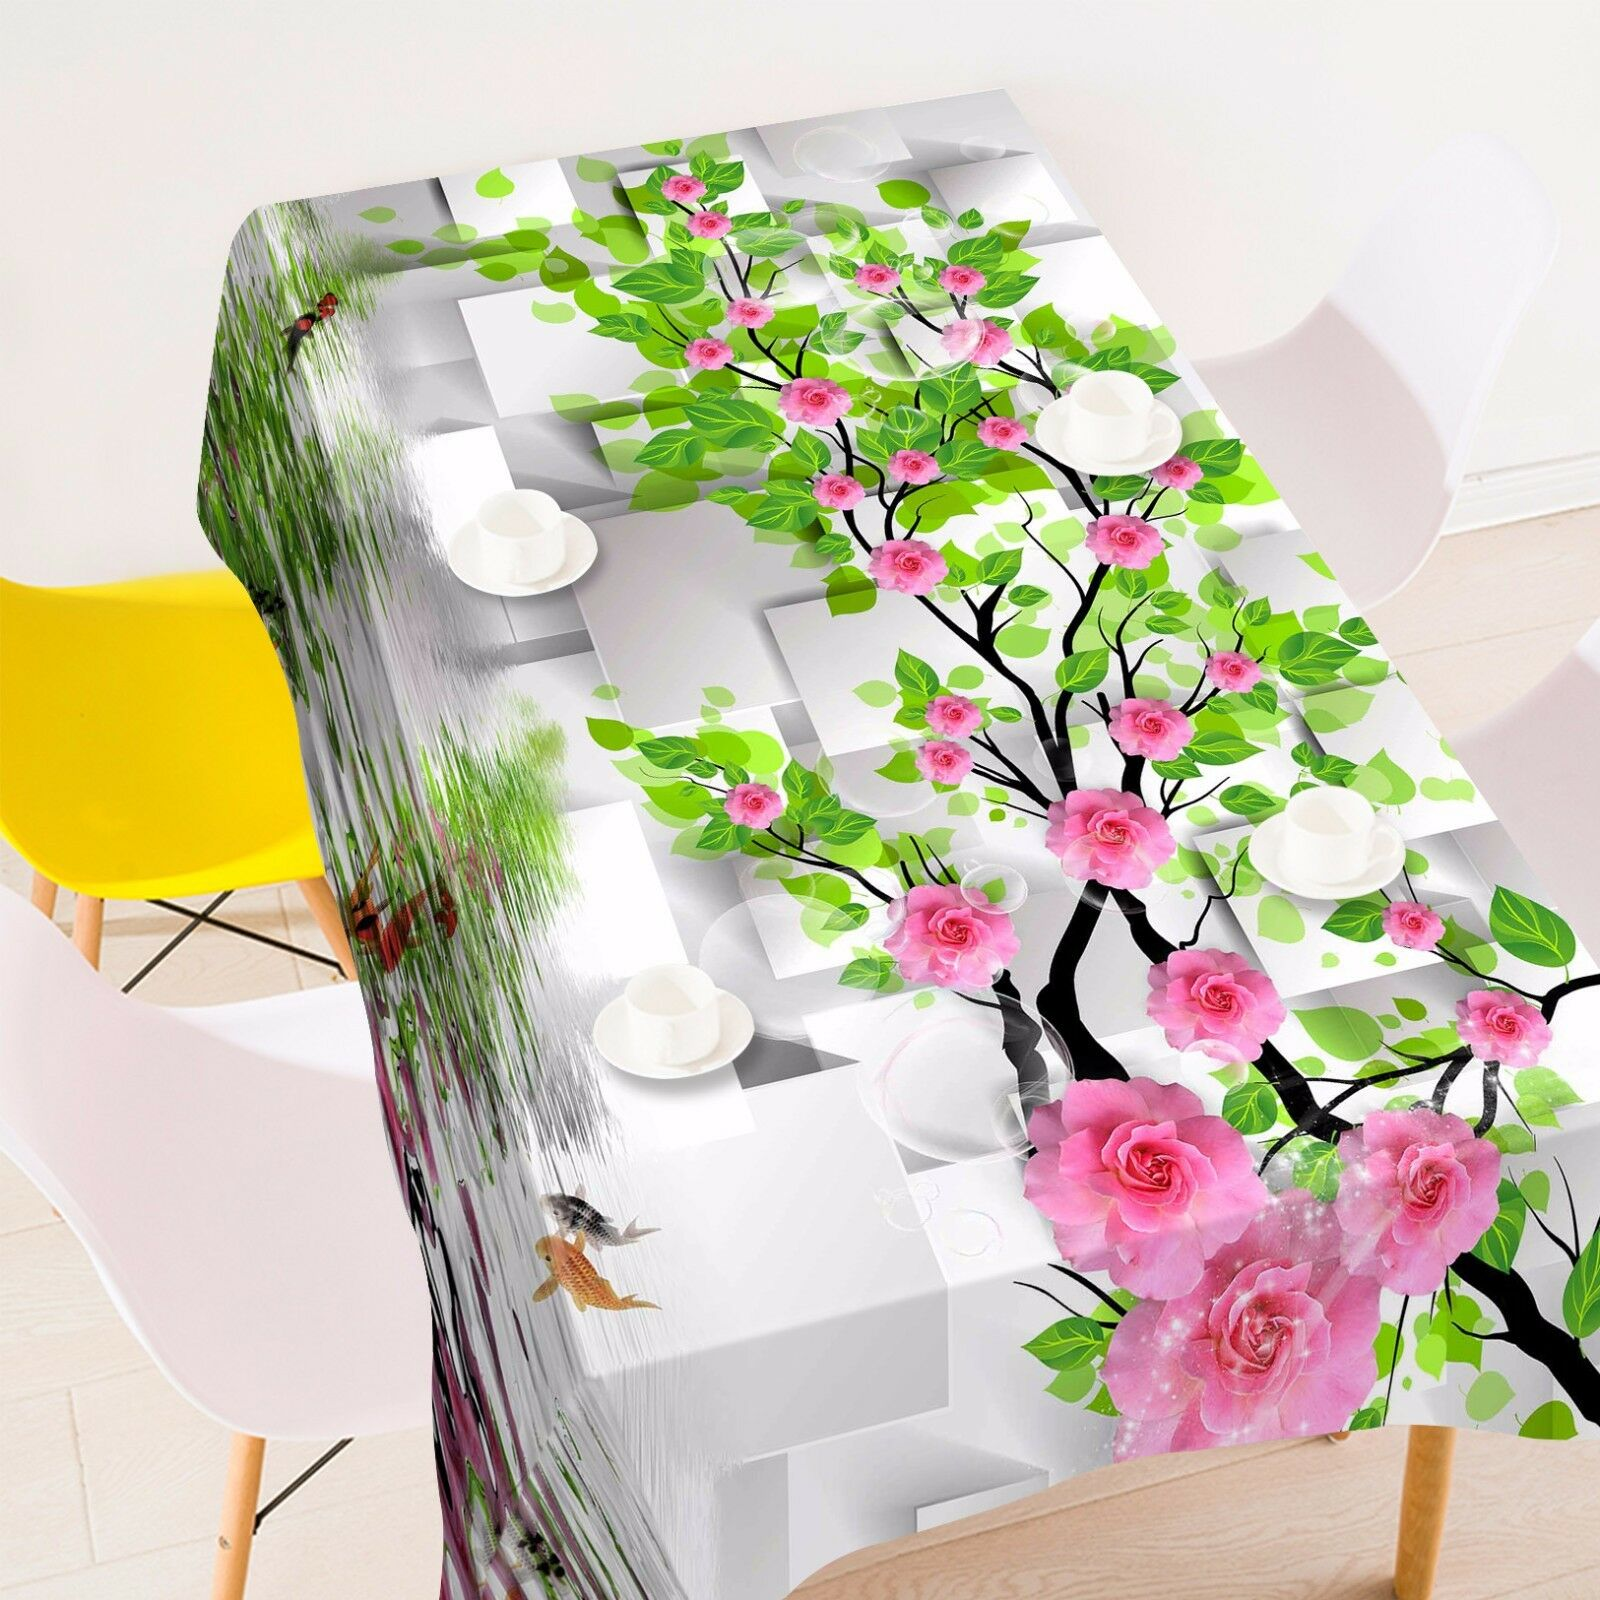 3D Flower 4402 Tablecloth Table Cover Cloth Birthday Party Event AJ WALLPAPER AU